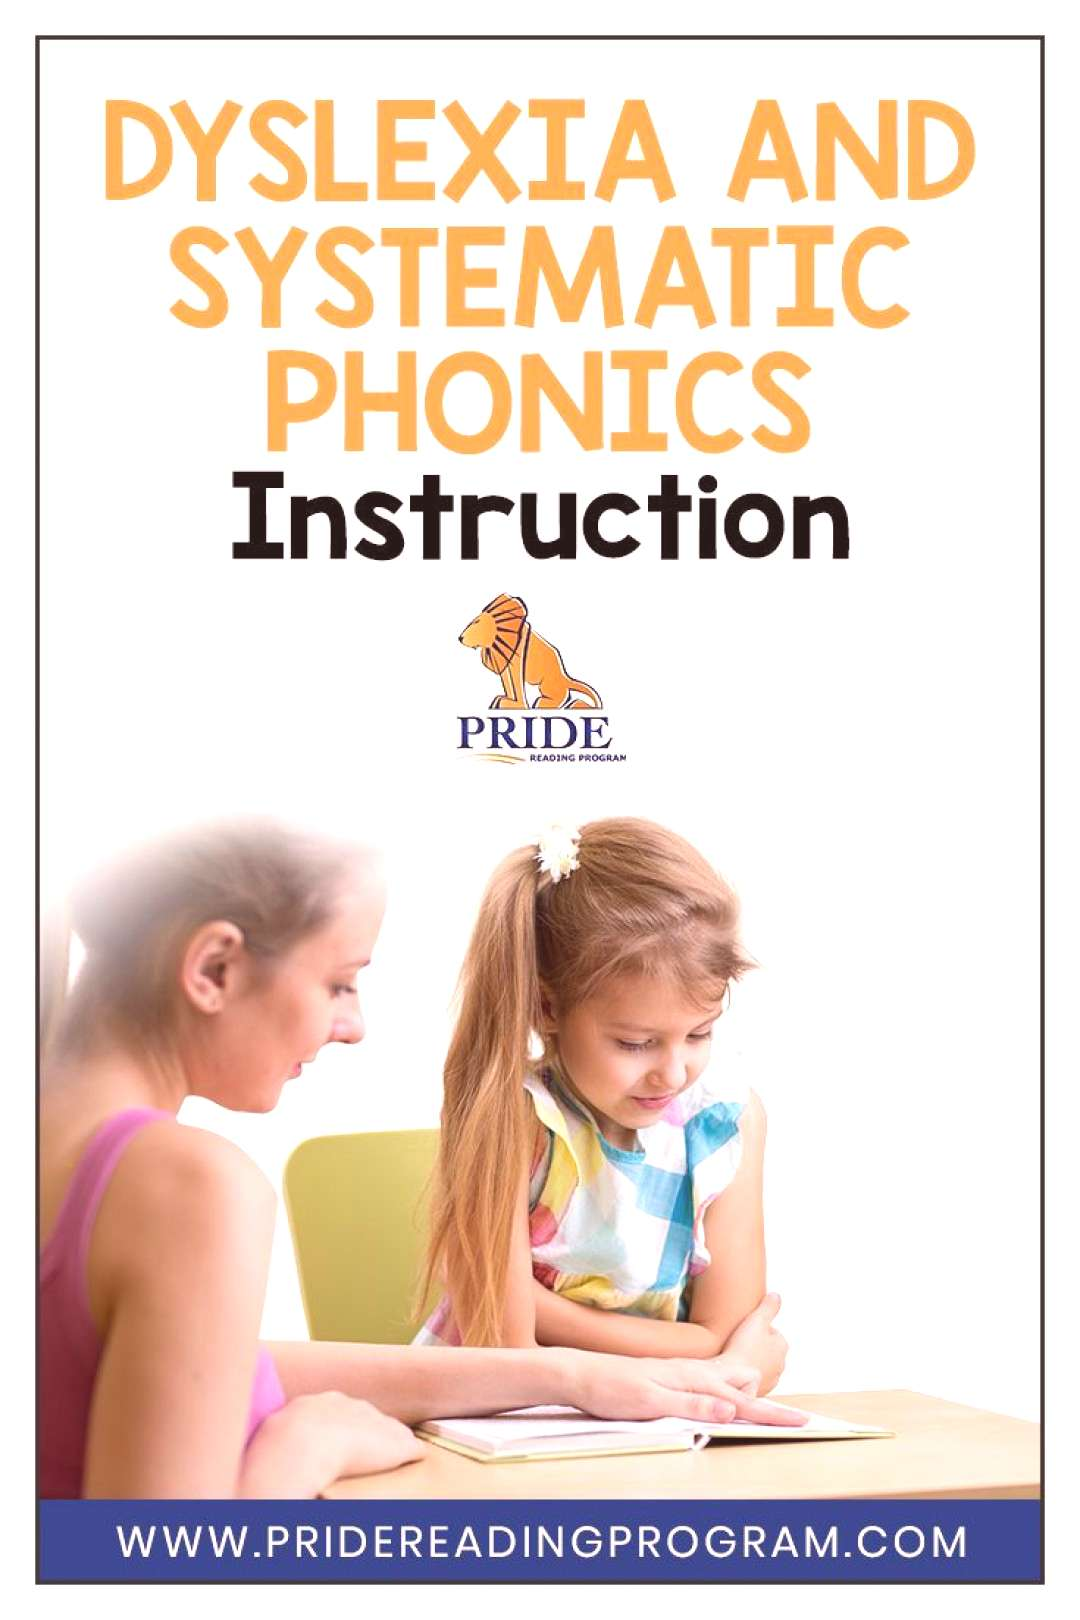 Dyslexia and Systematic Phonics Instruction. Children with dyslexia need to be taught how to read a